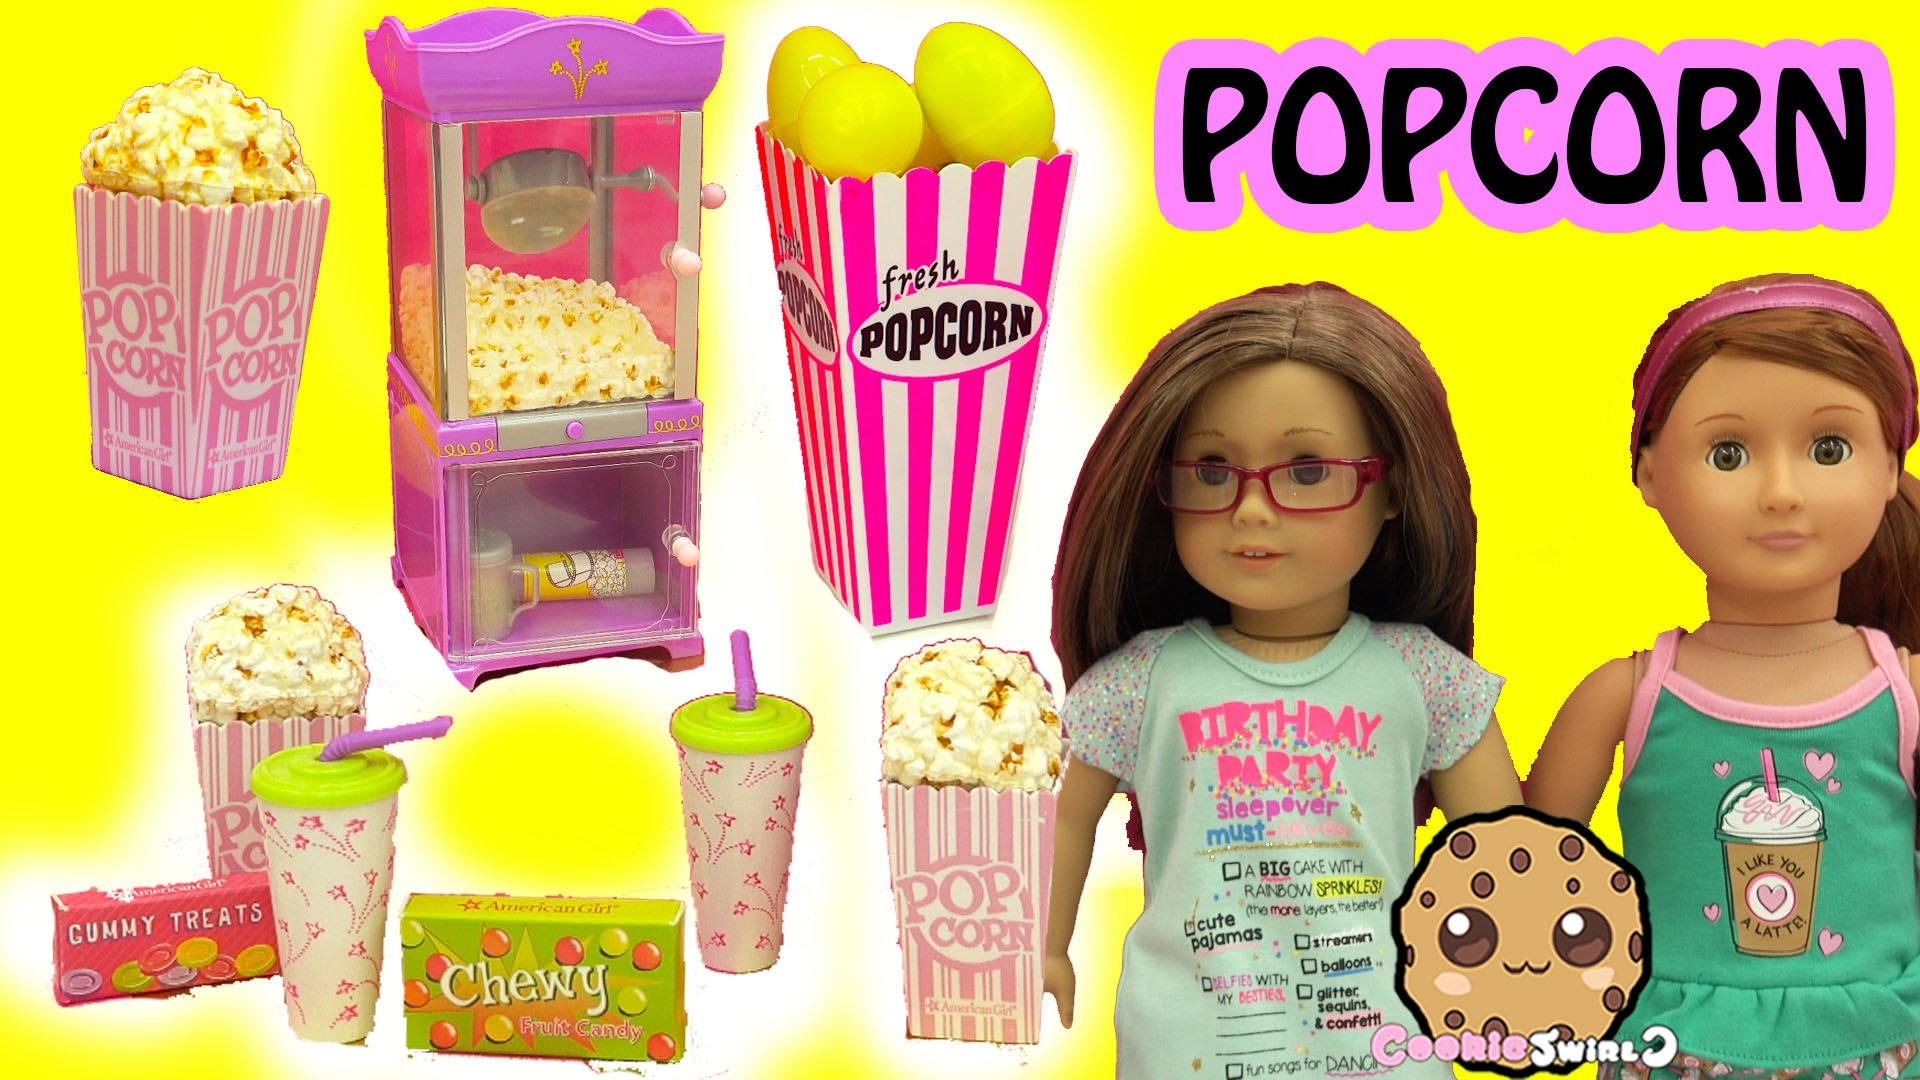 American Girl Doll Popcorn Machine & Pop Corn Box of Surprise Eggs and  Mystery Blind Bags – YouTube